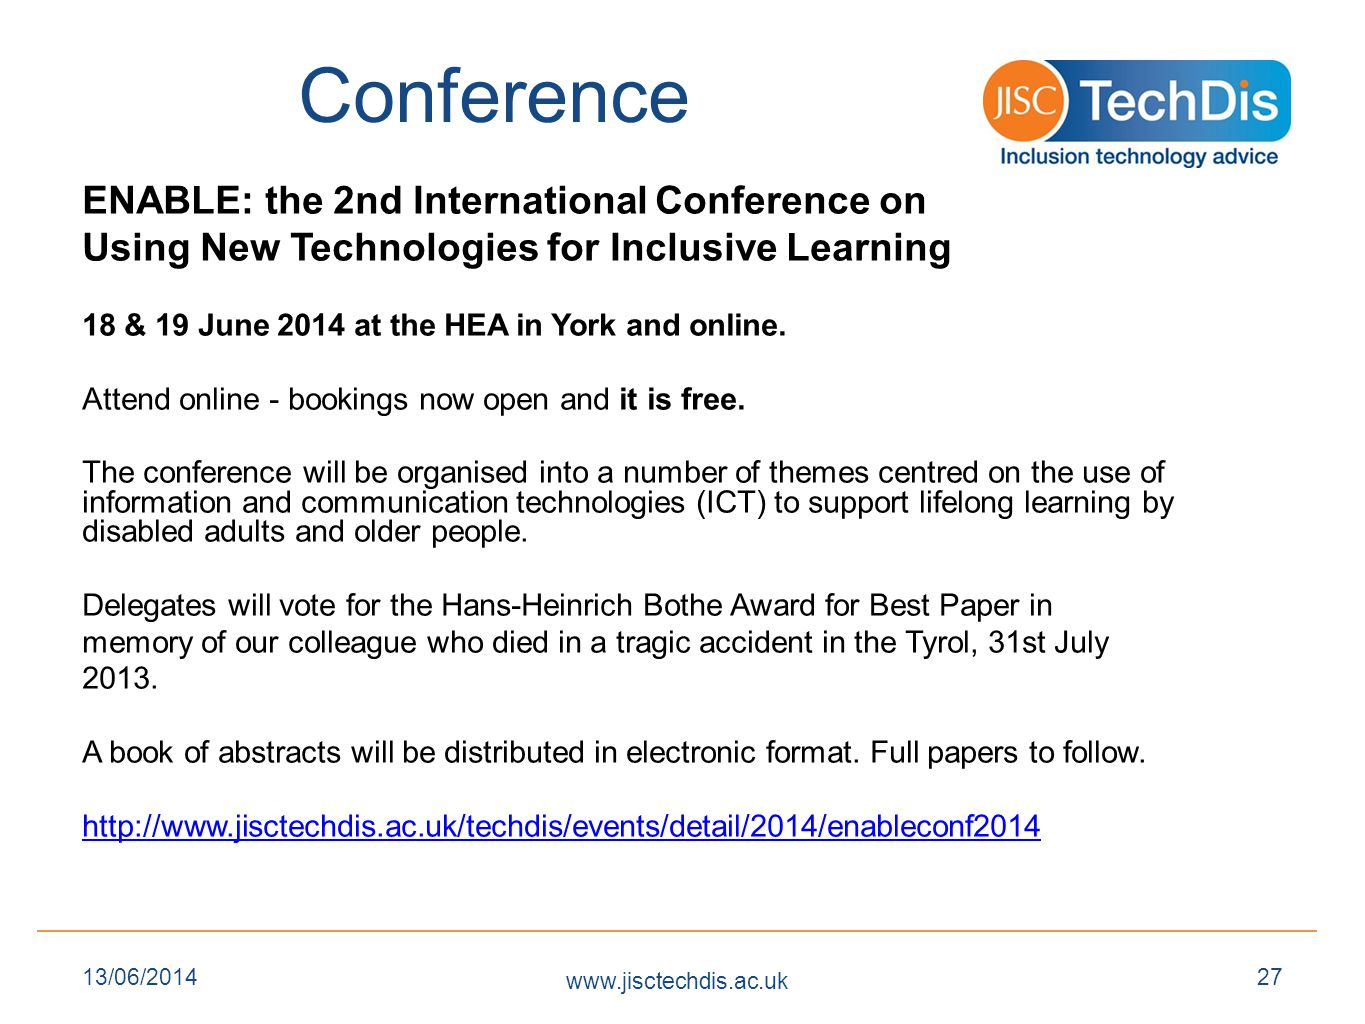 Conference ENABLE: the 2nd International Conference on Using New Technologies for Inclusive Learning 18 & 19 June 2014 at the HEA in York and online.